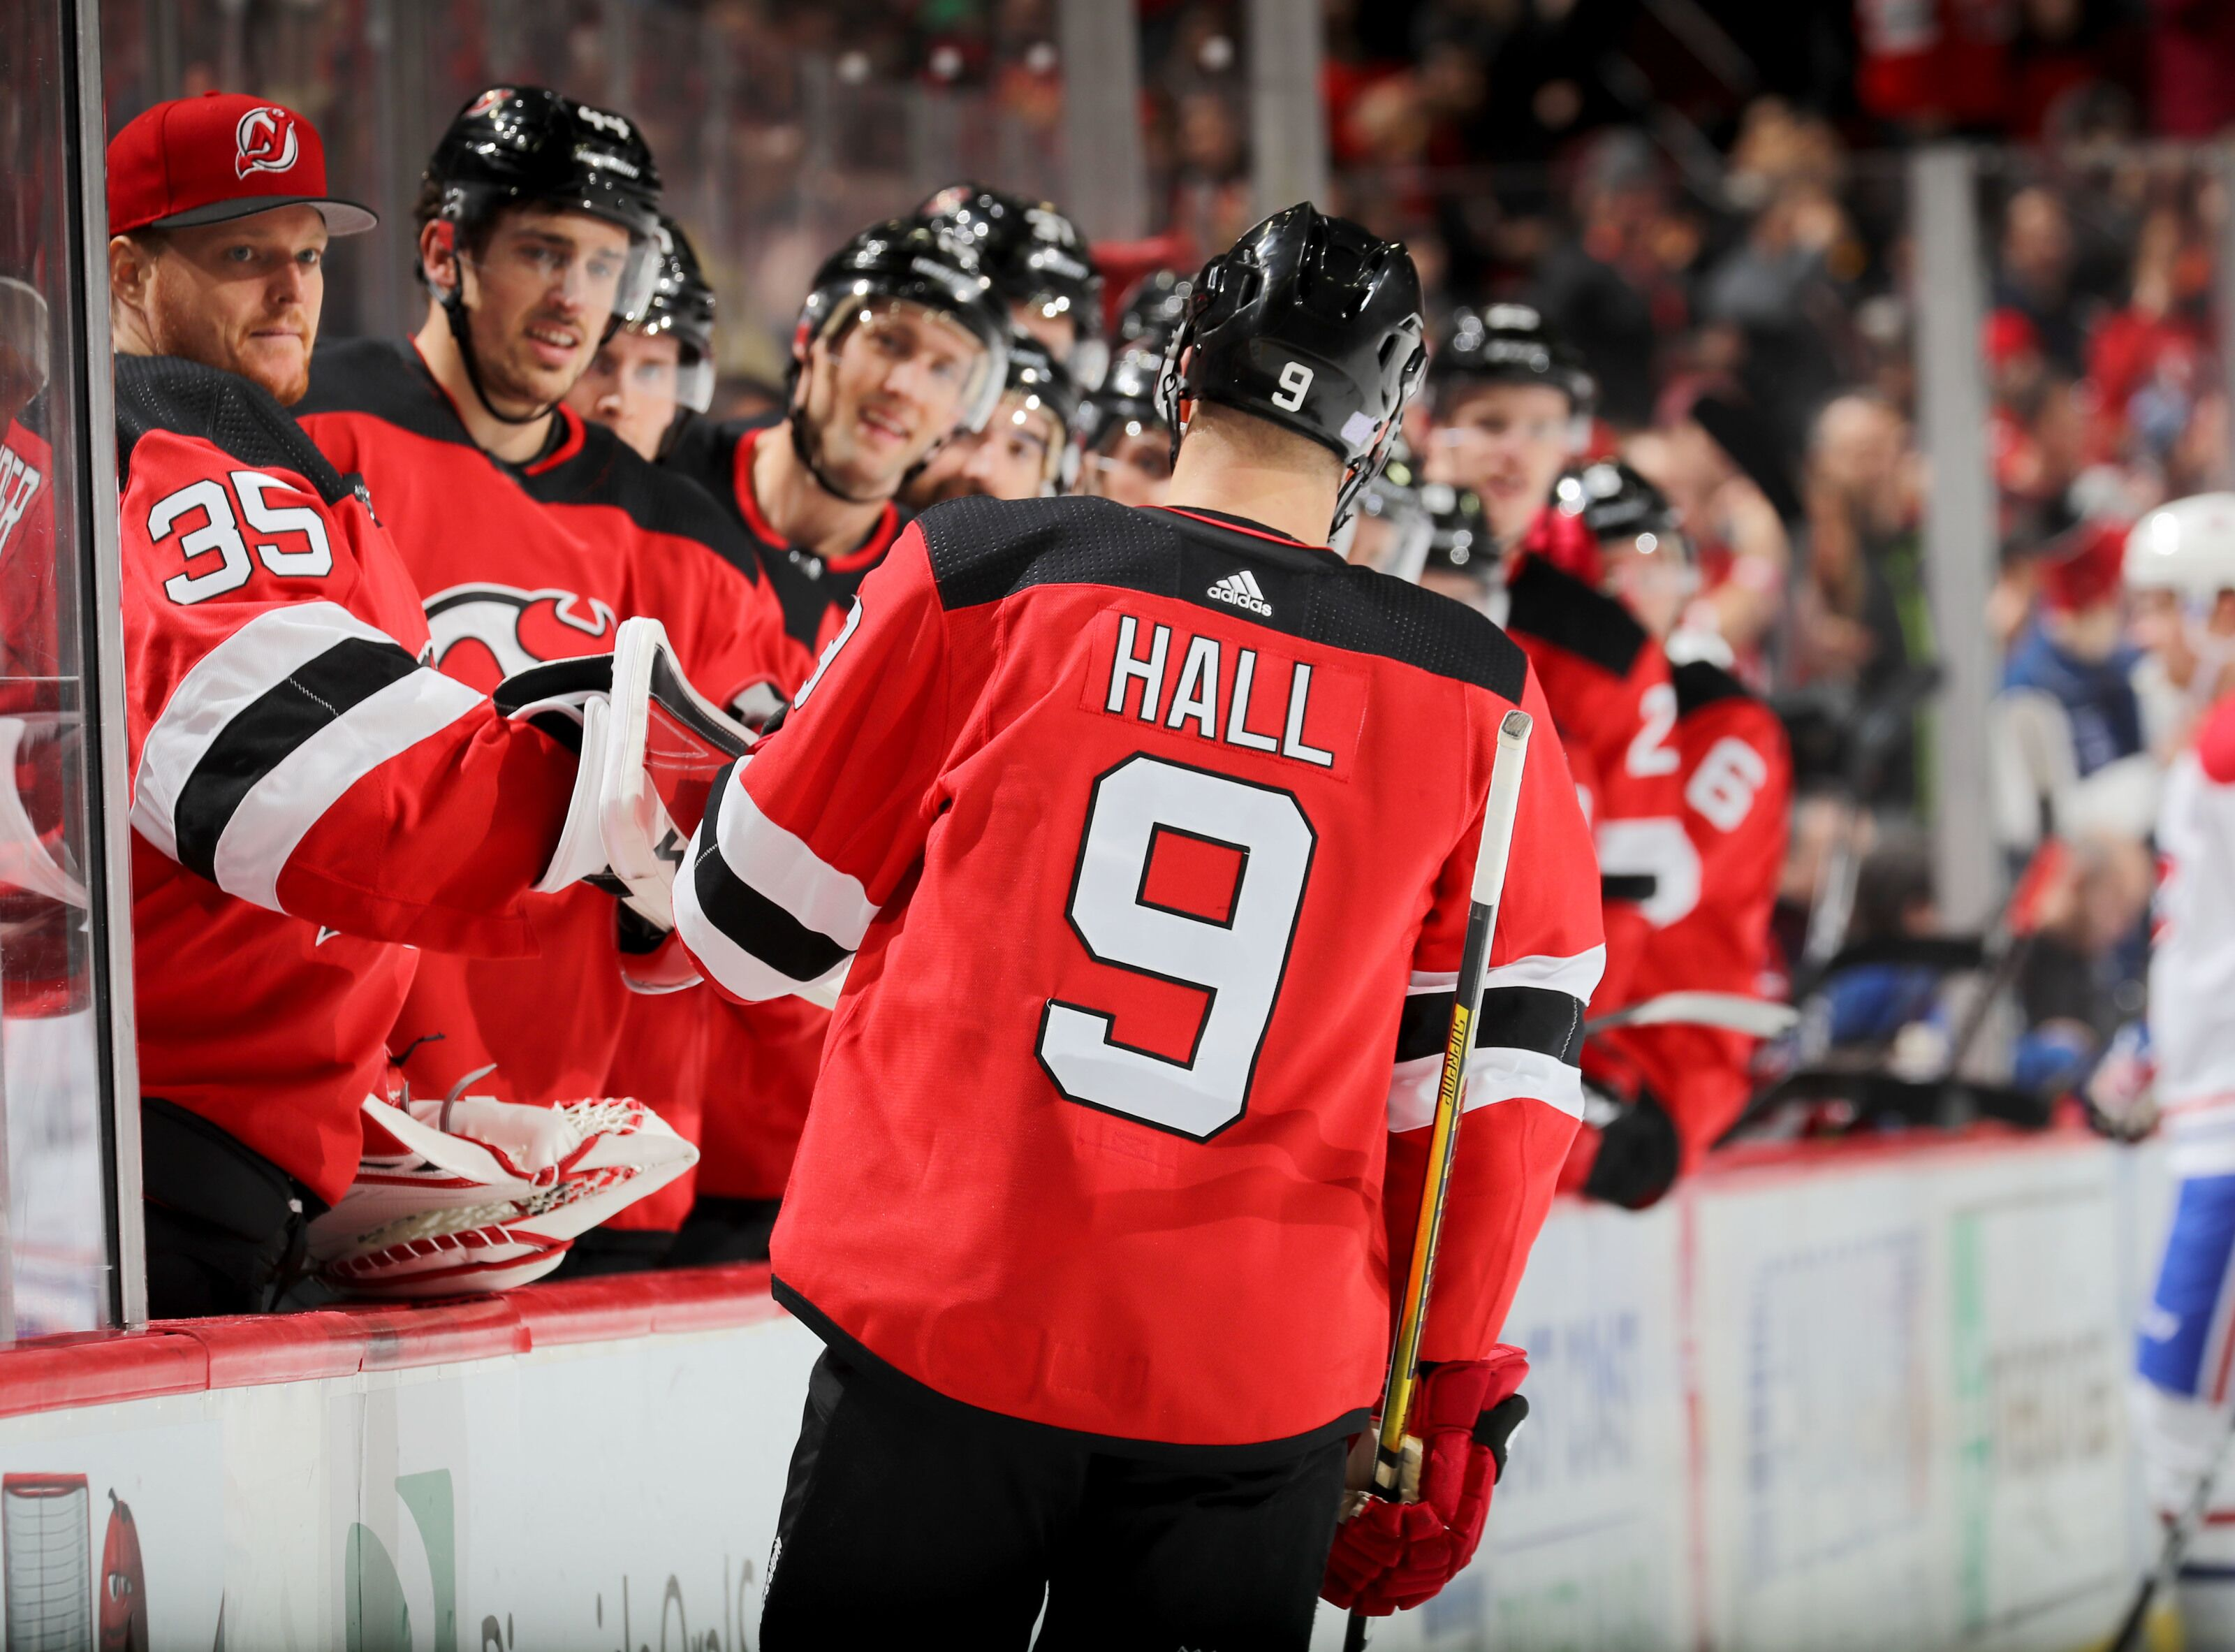 abd1feed745 New Jersey Devils: Indicators that make them 2020 playoff contenders